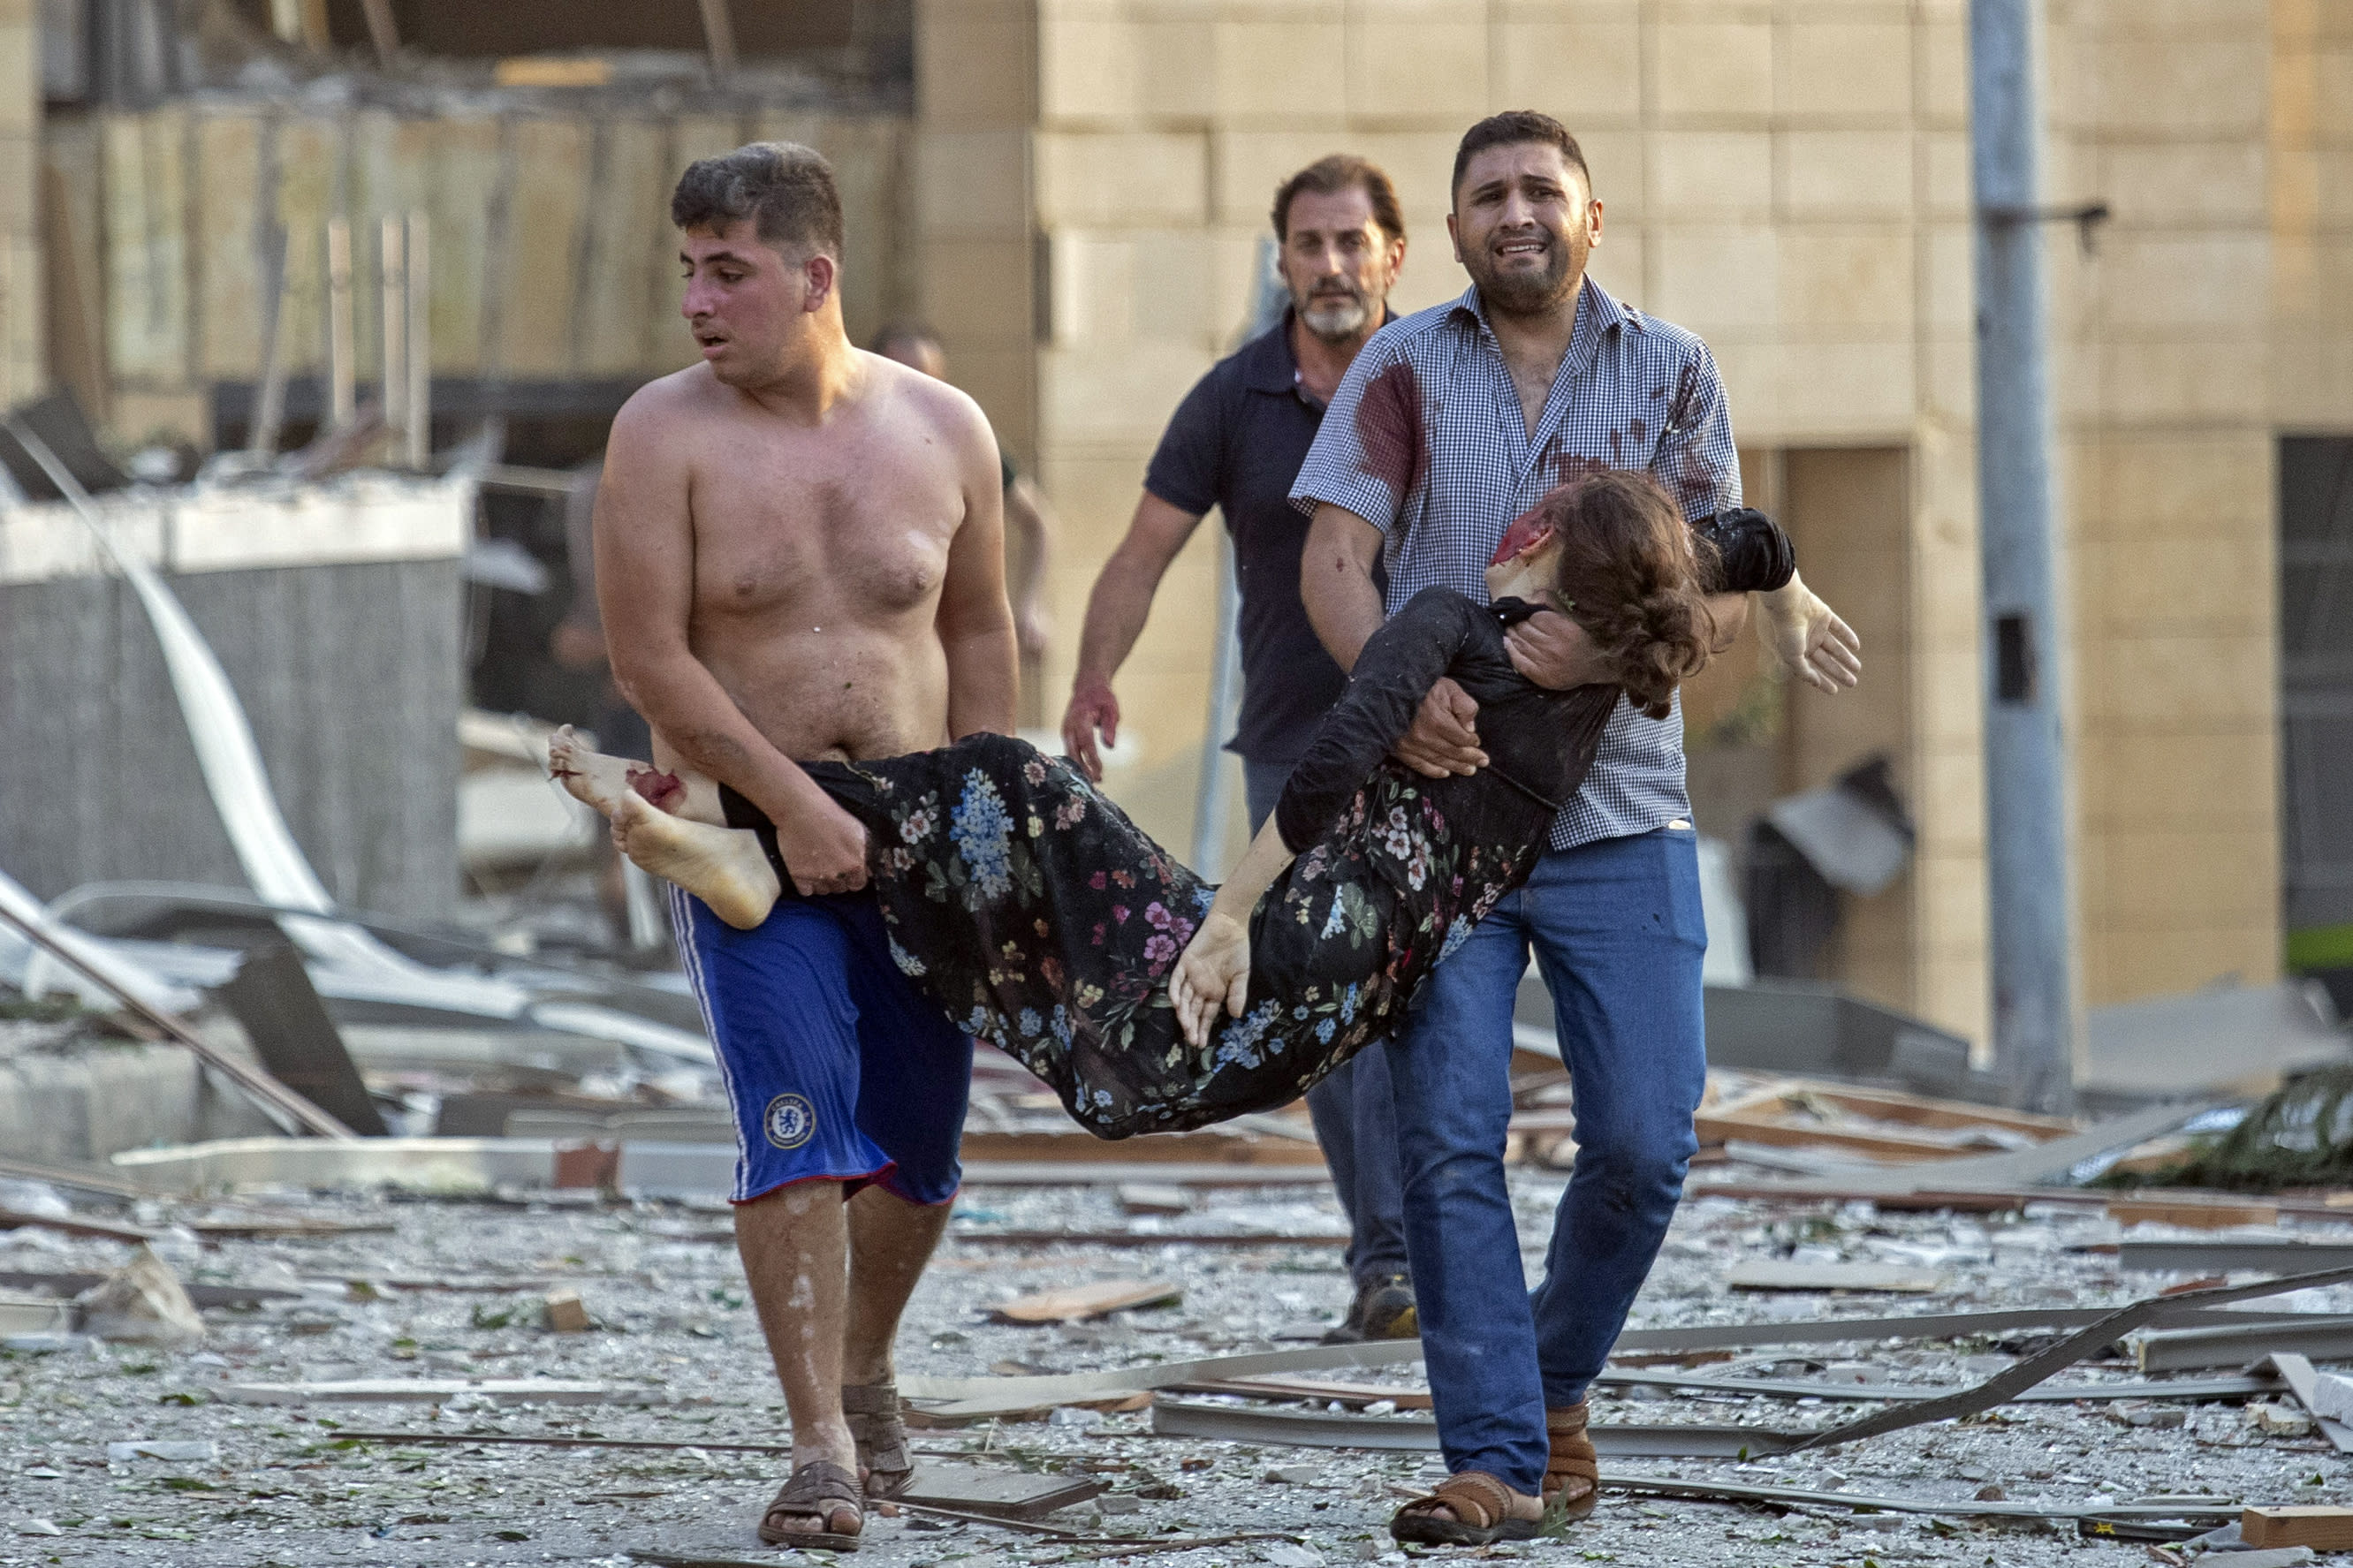 A wounded woman is evacuated after a massive explosion in Beirut, Lebanon, Tuesday, Aug. 4, 2020. (AP Photo/Hassan Ammar)